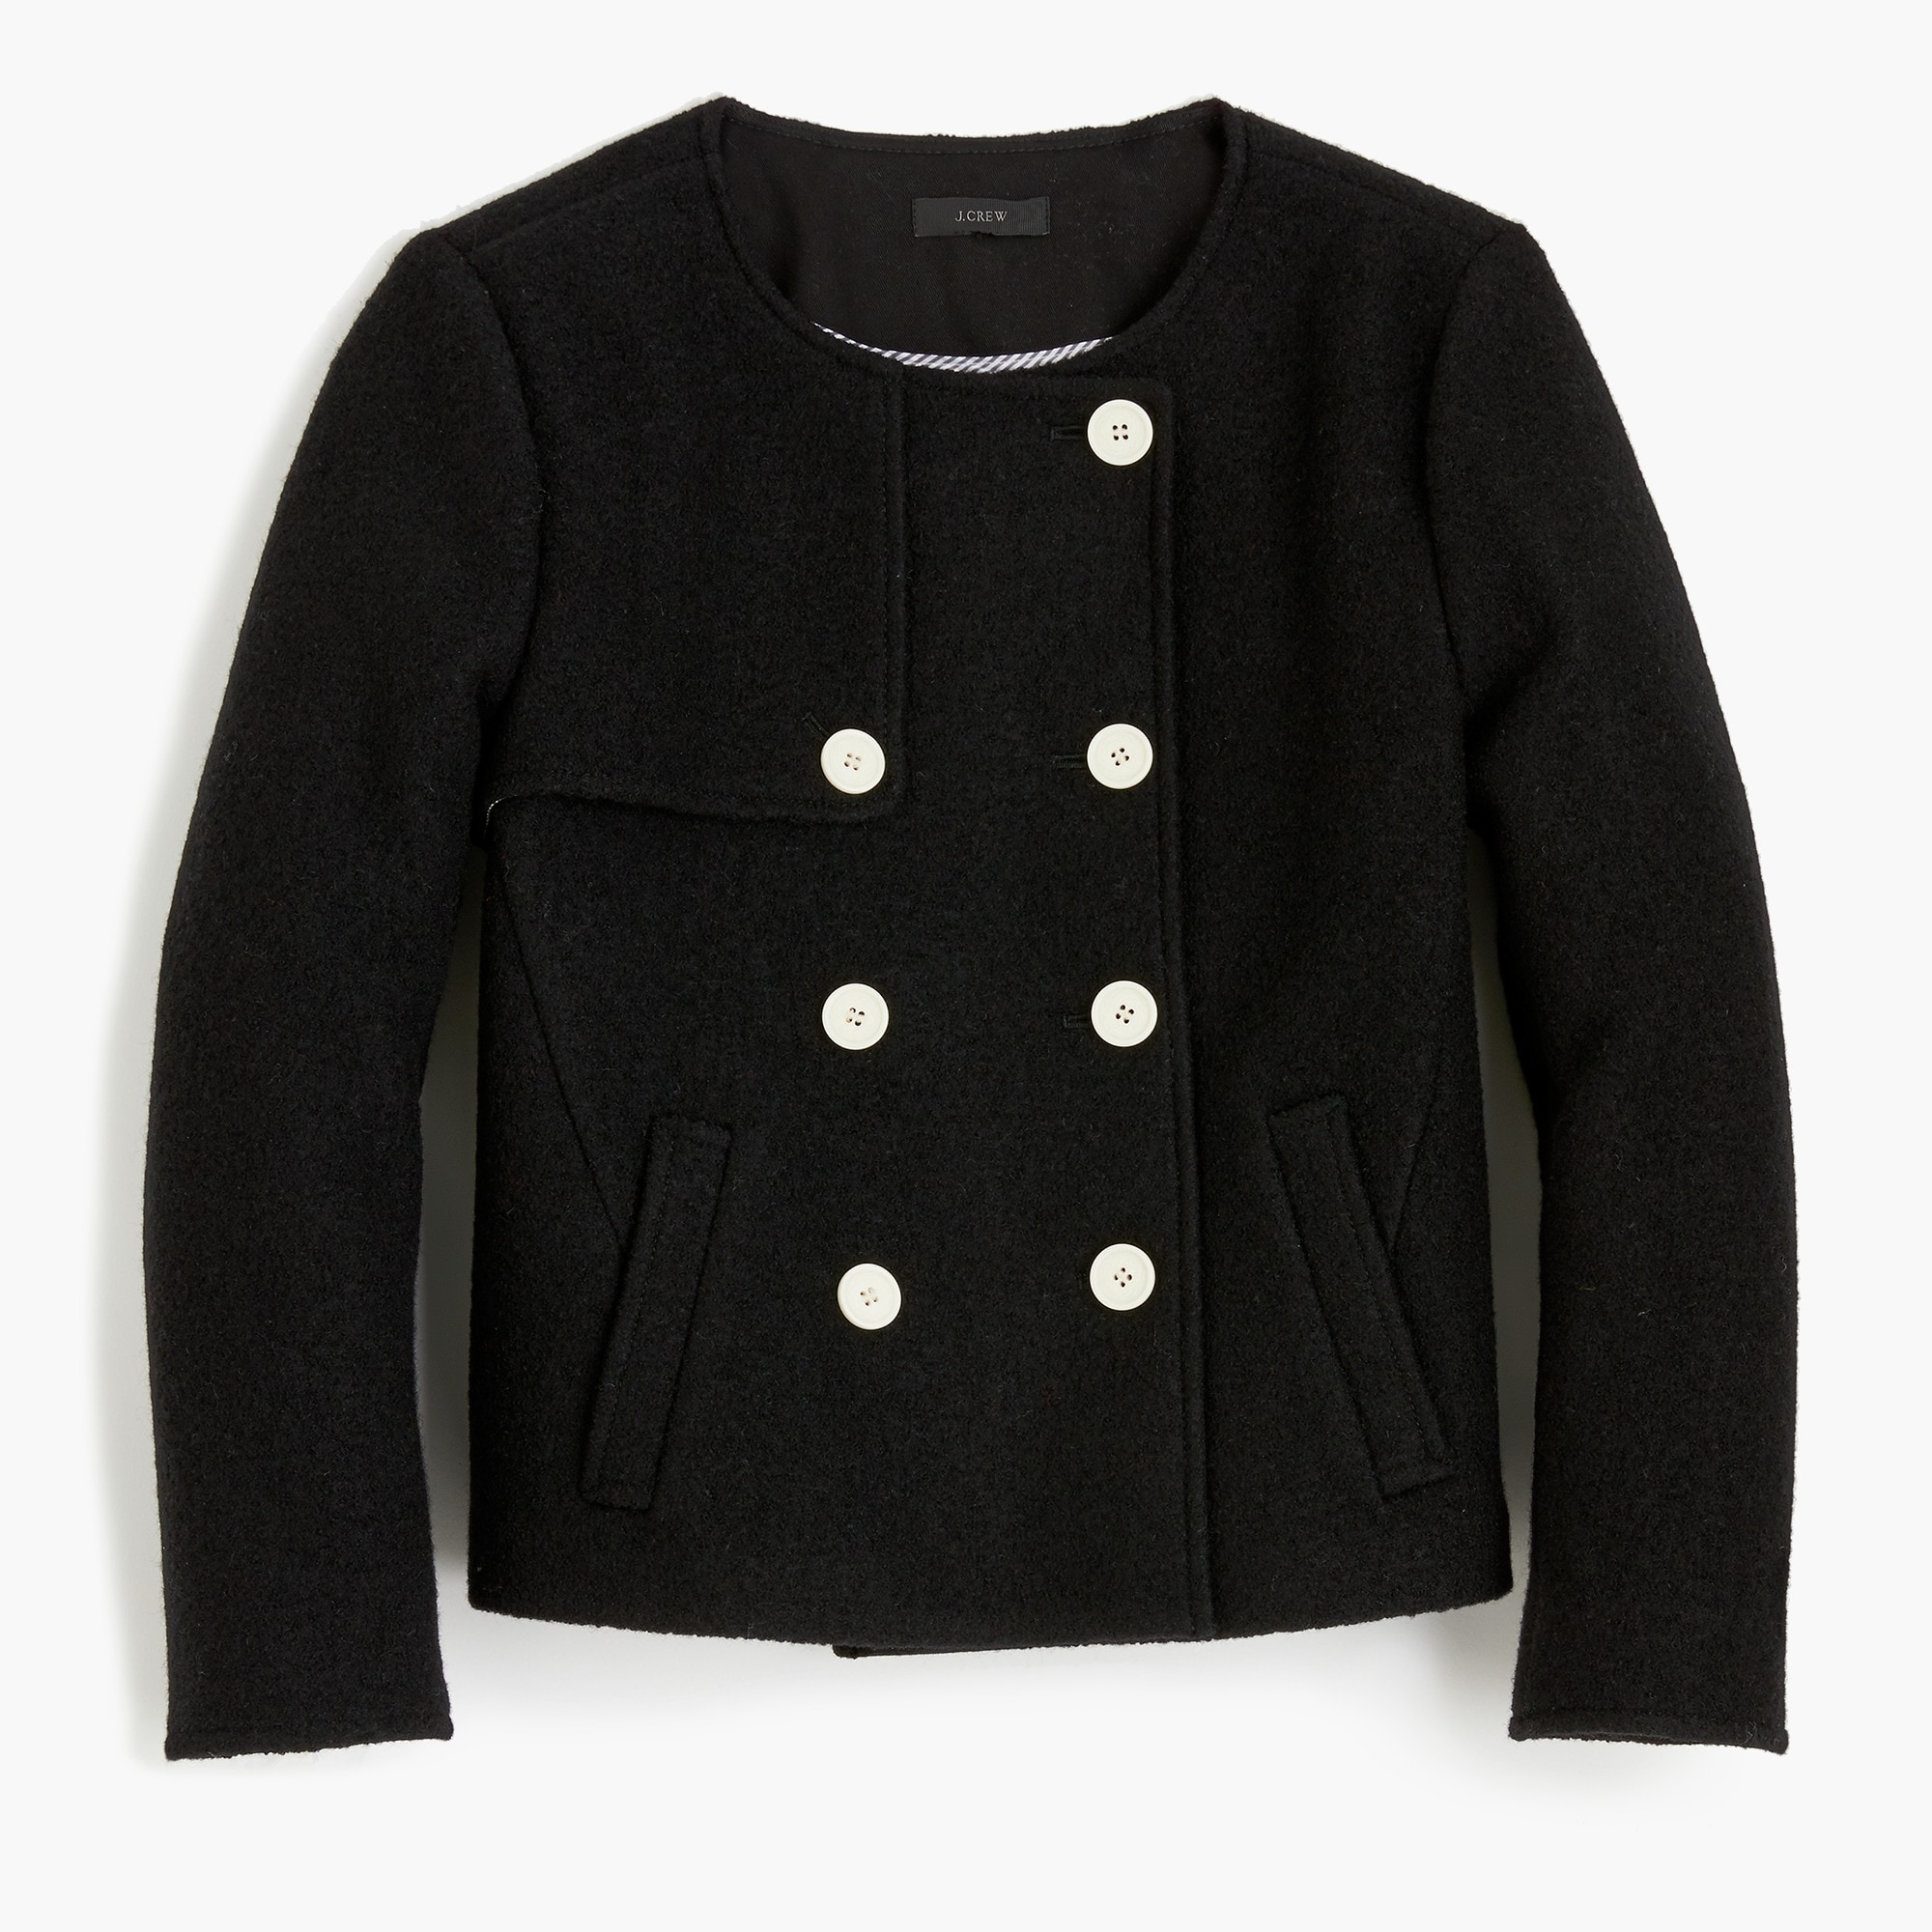 Cropped jacket in boiled wool